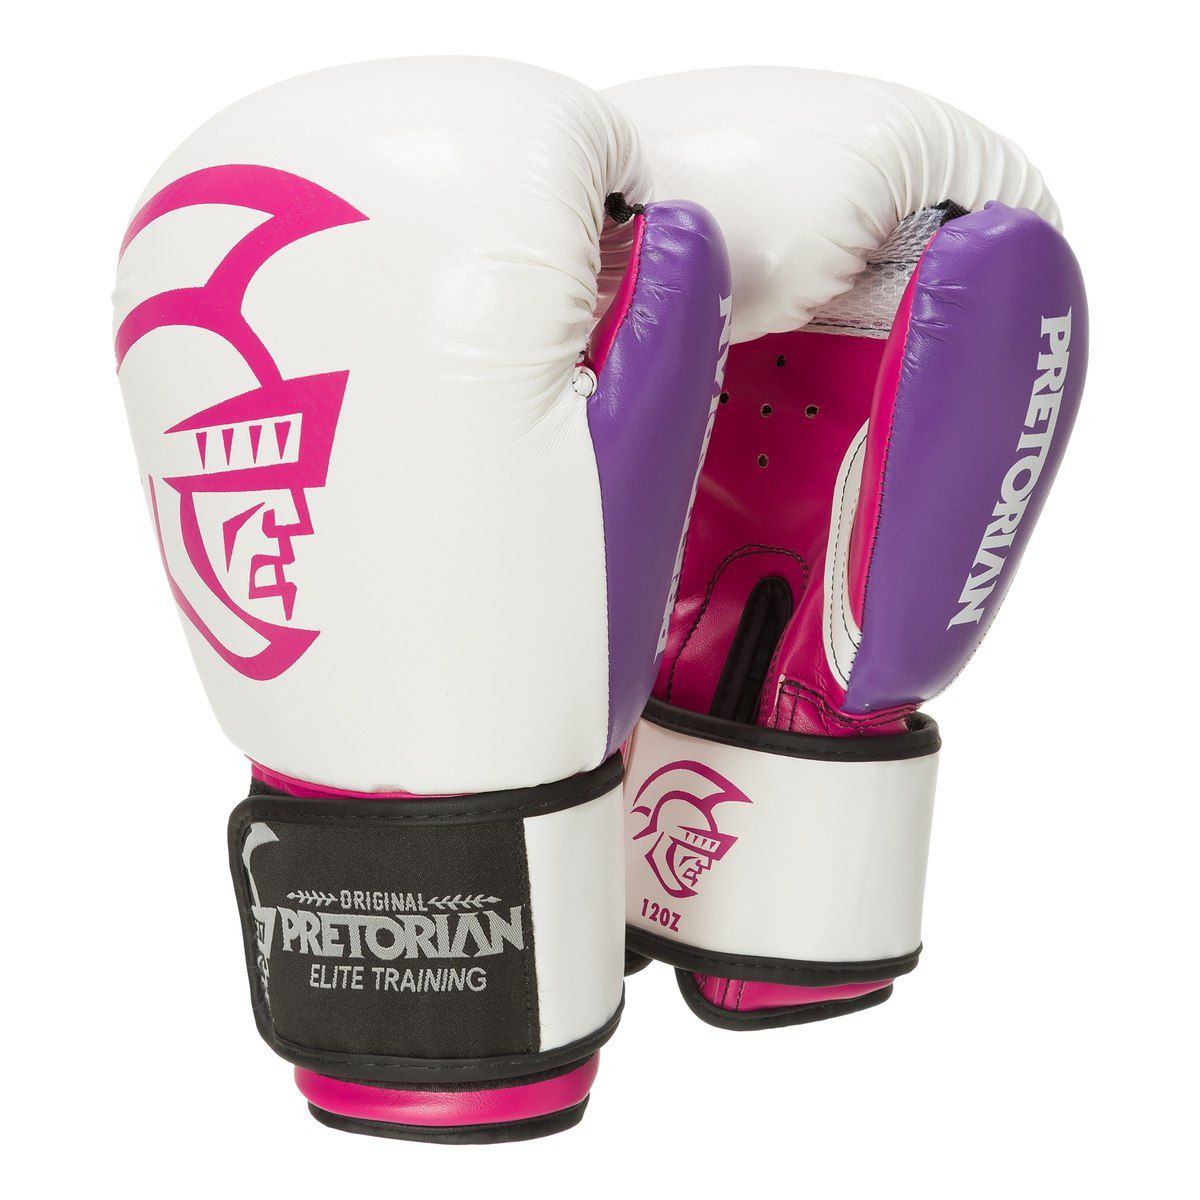 Luva de Boxe / Muay Thai 10oz Feminina - Rosa - Elite Training - Pretorian  - PRALUTA SHOP